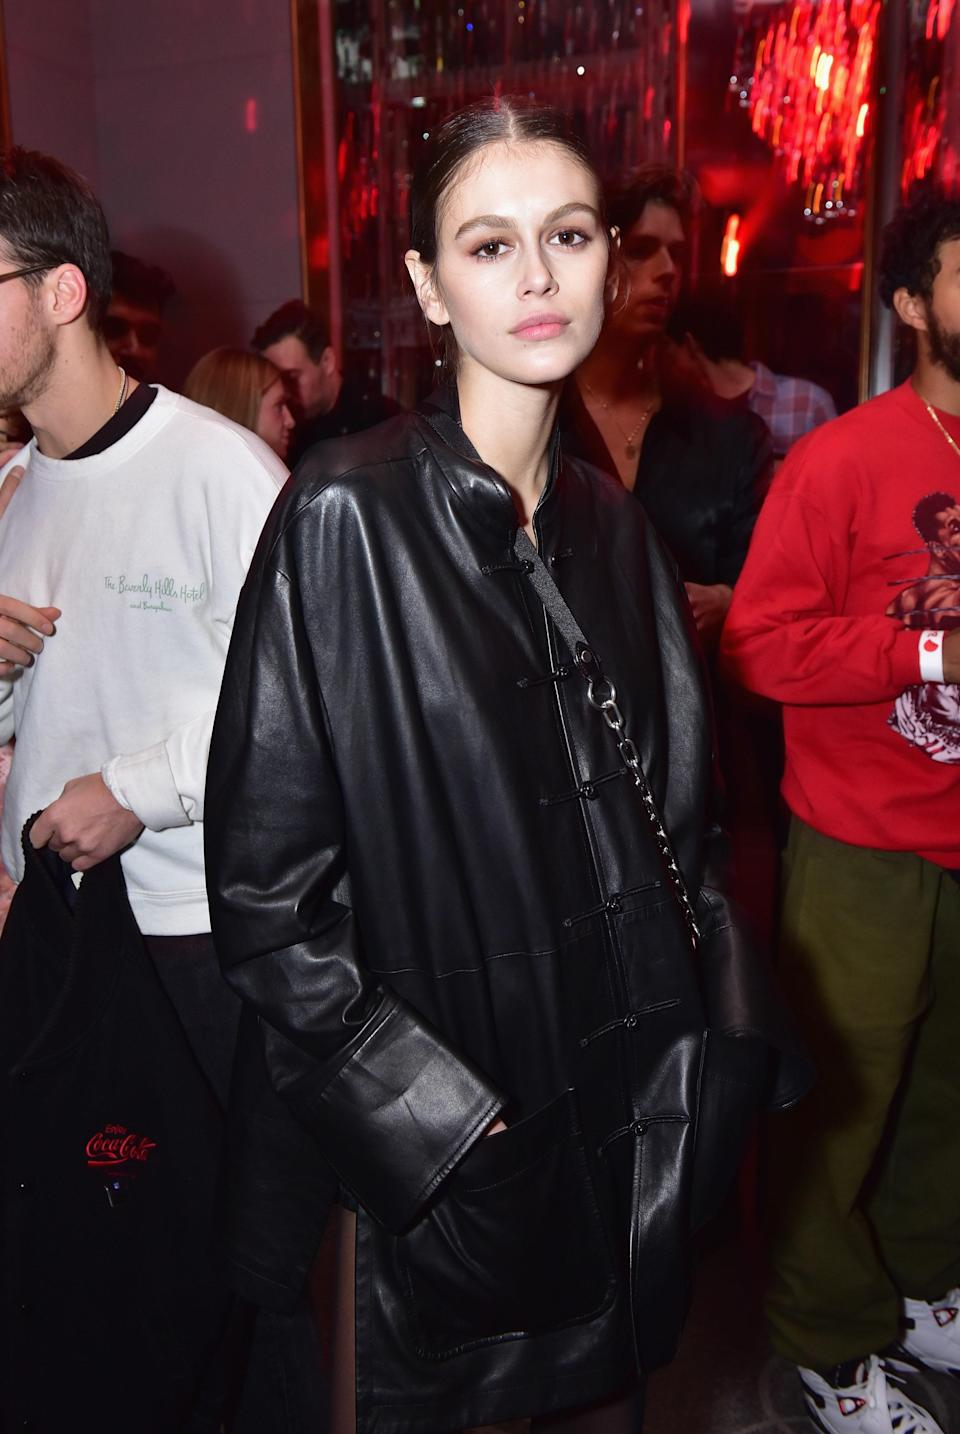 You can rock leather coats to the function too.